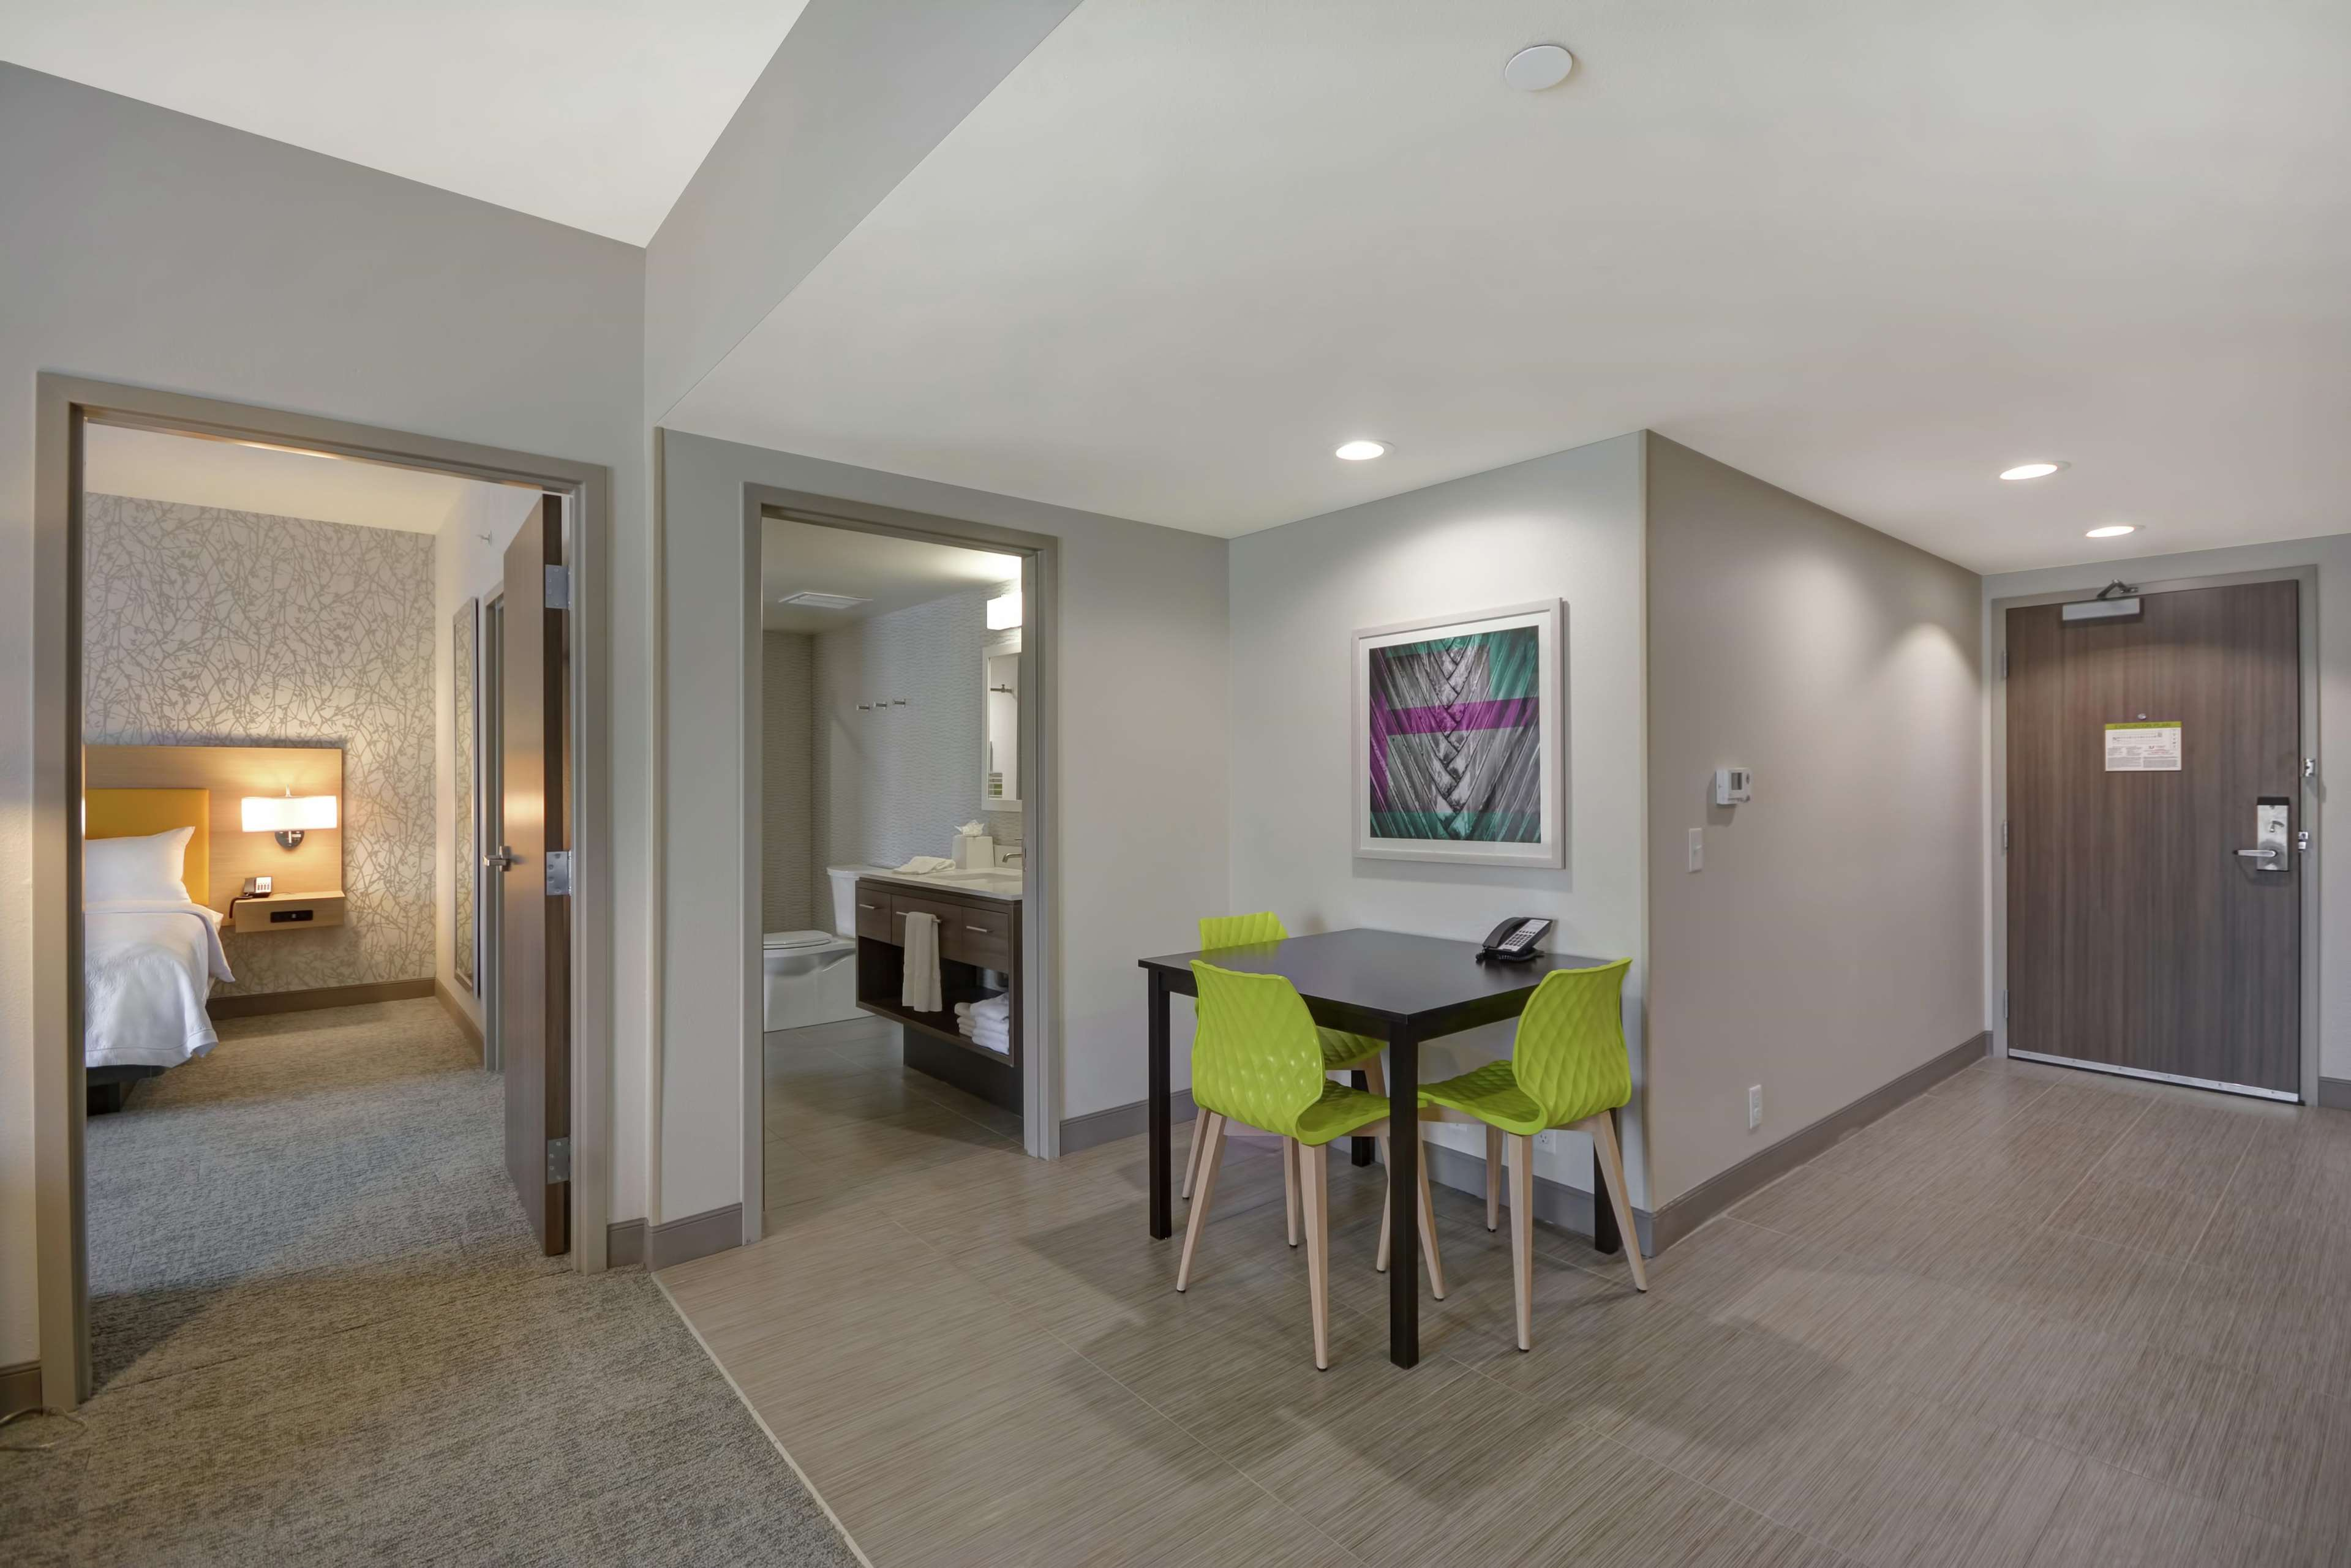 Home2 Suites by Hilton Dayton South